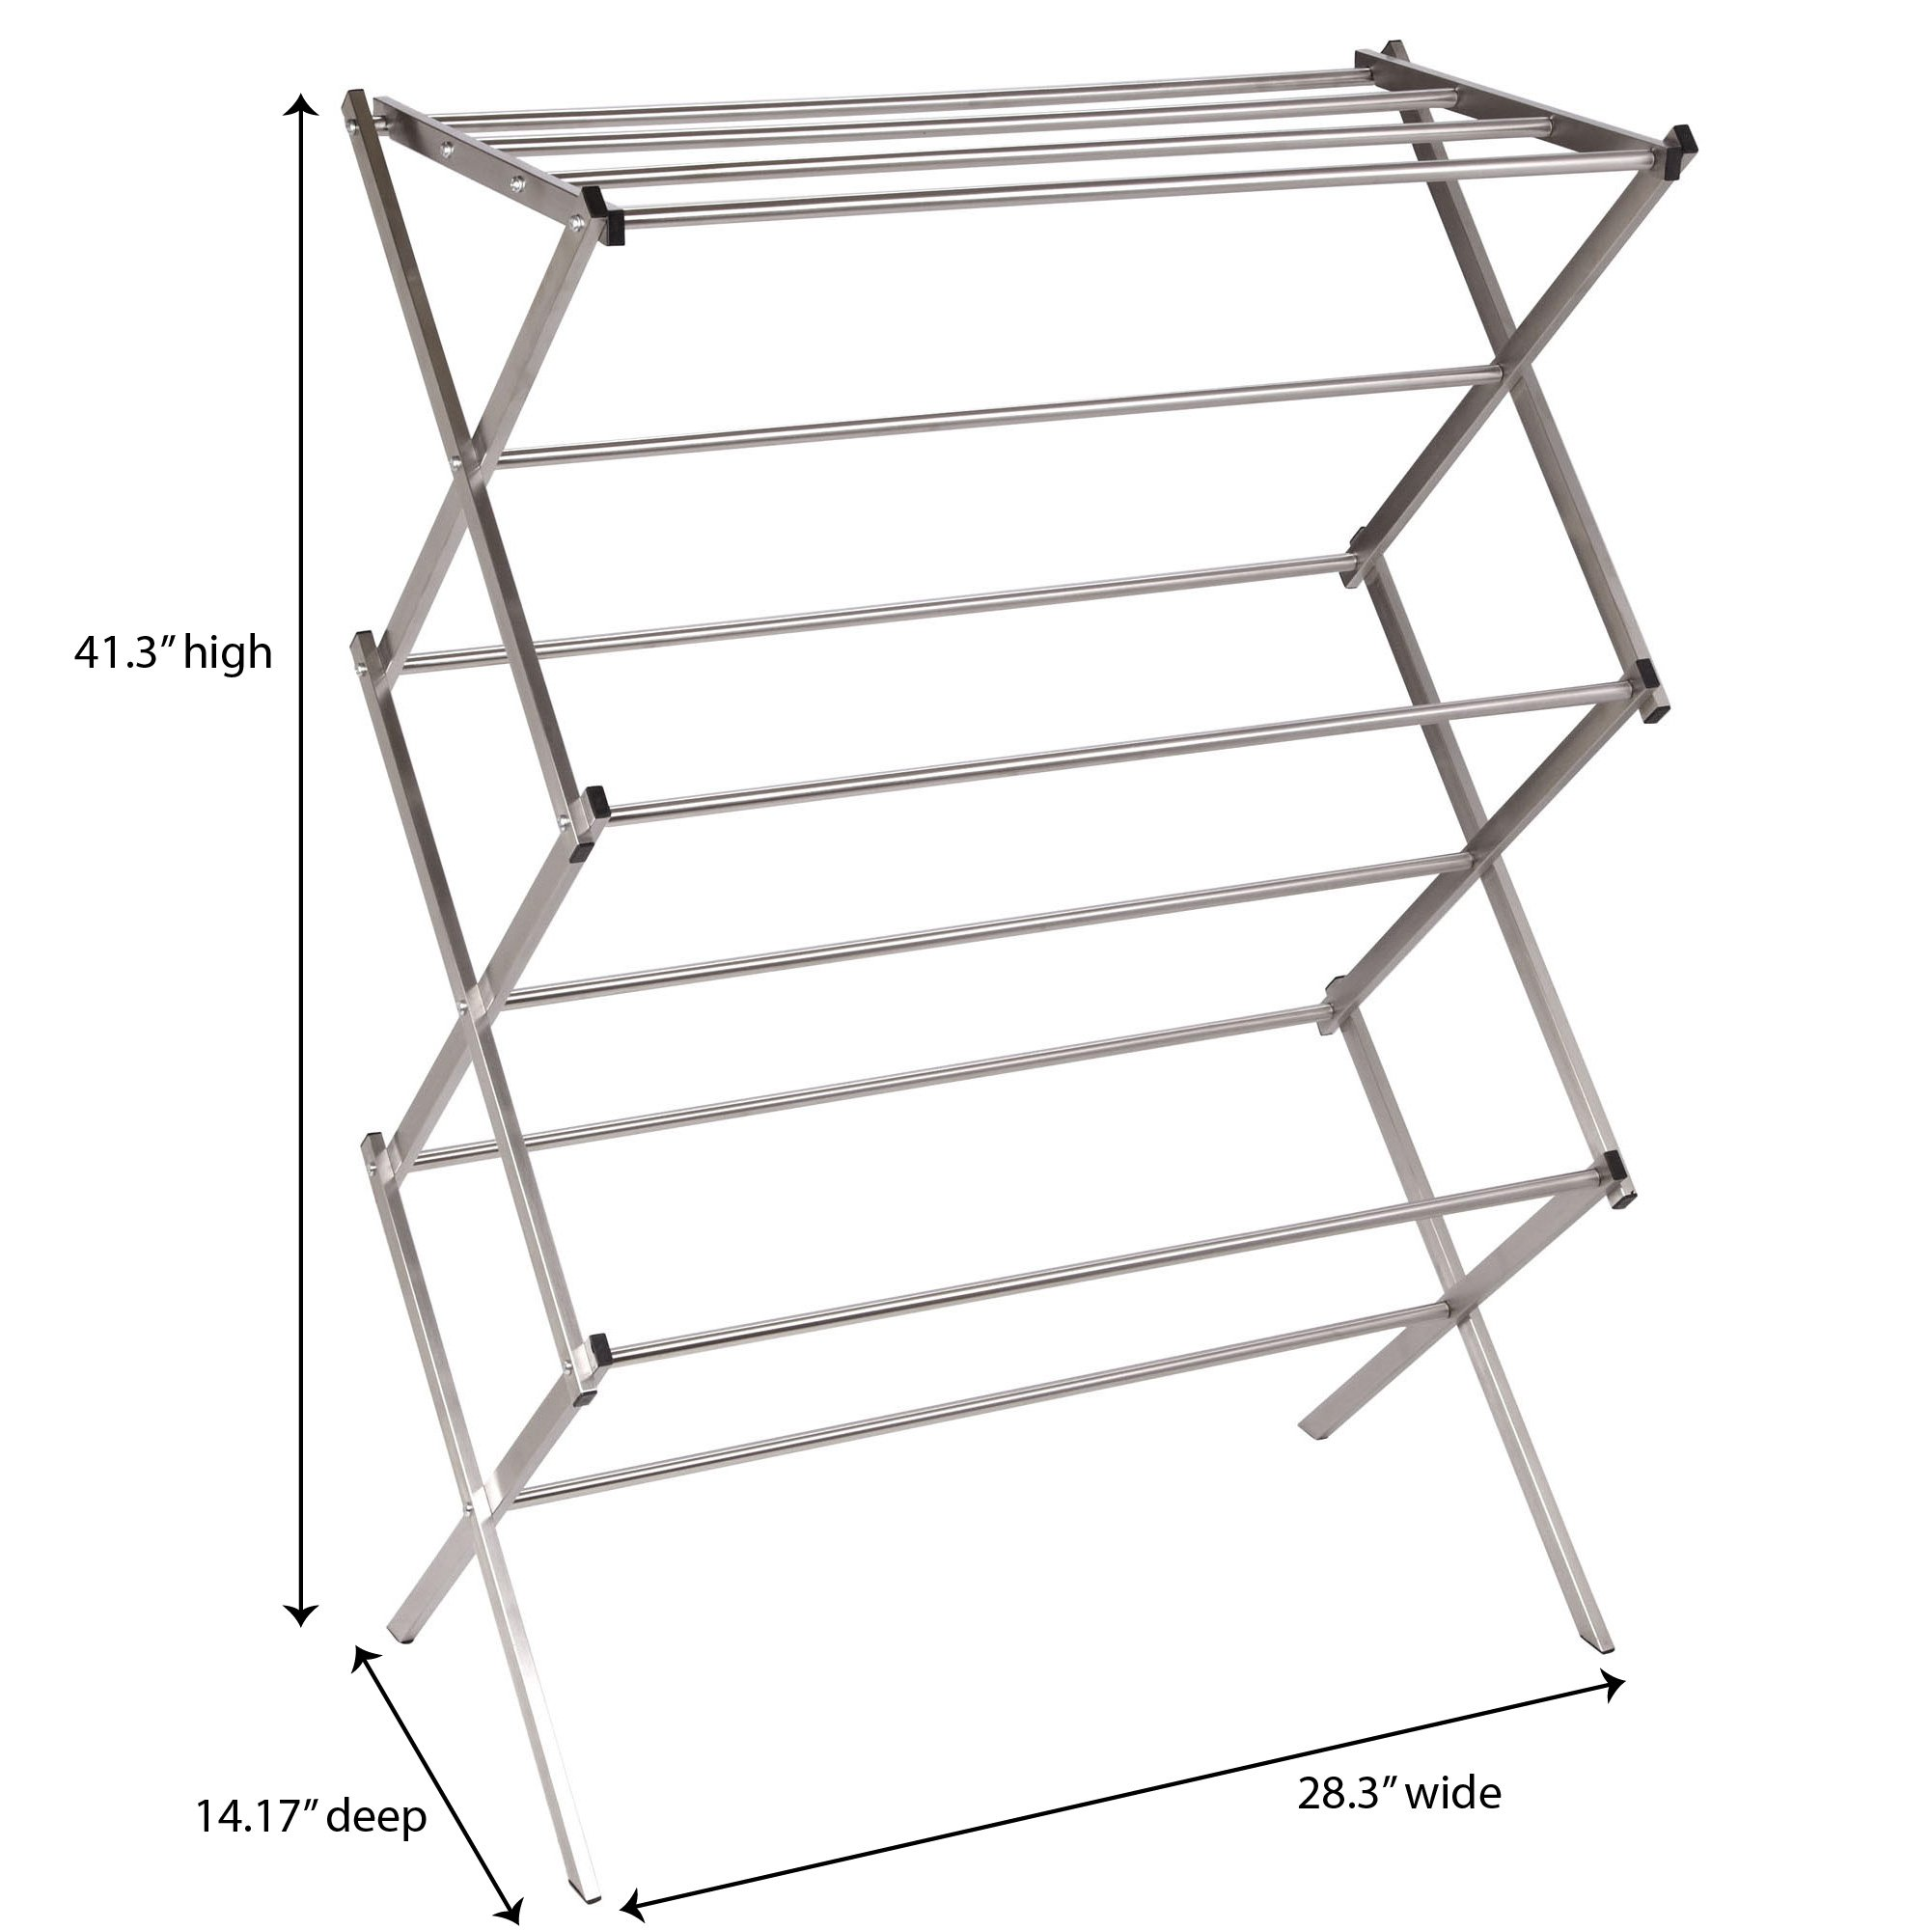 Household Essentials Folding X-Frame Clothes Dryer, Stainless Steel by Household Essentials (Image #6)